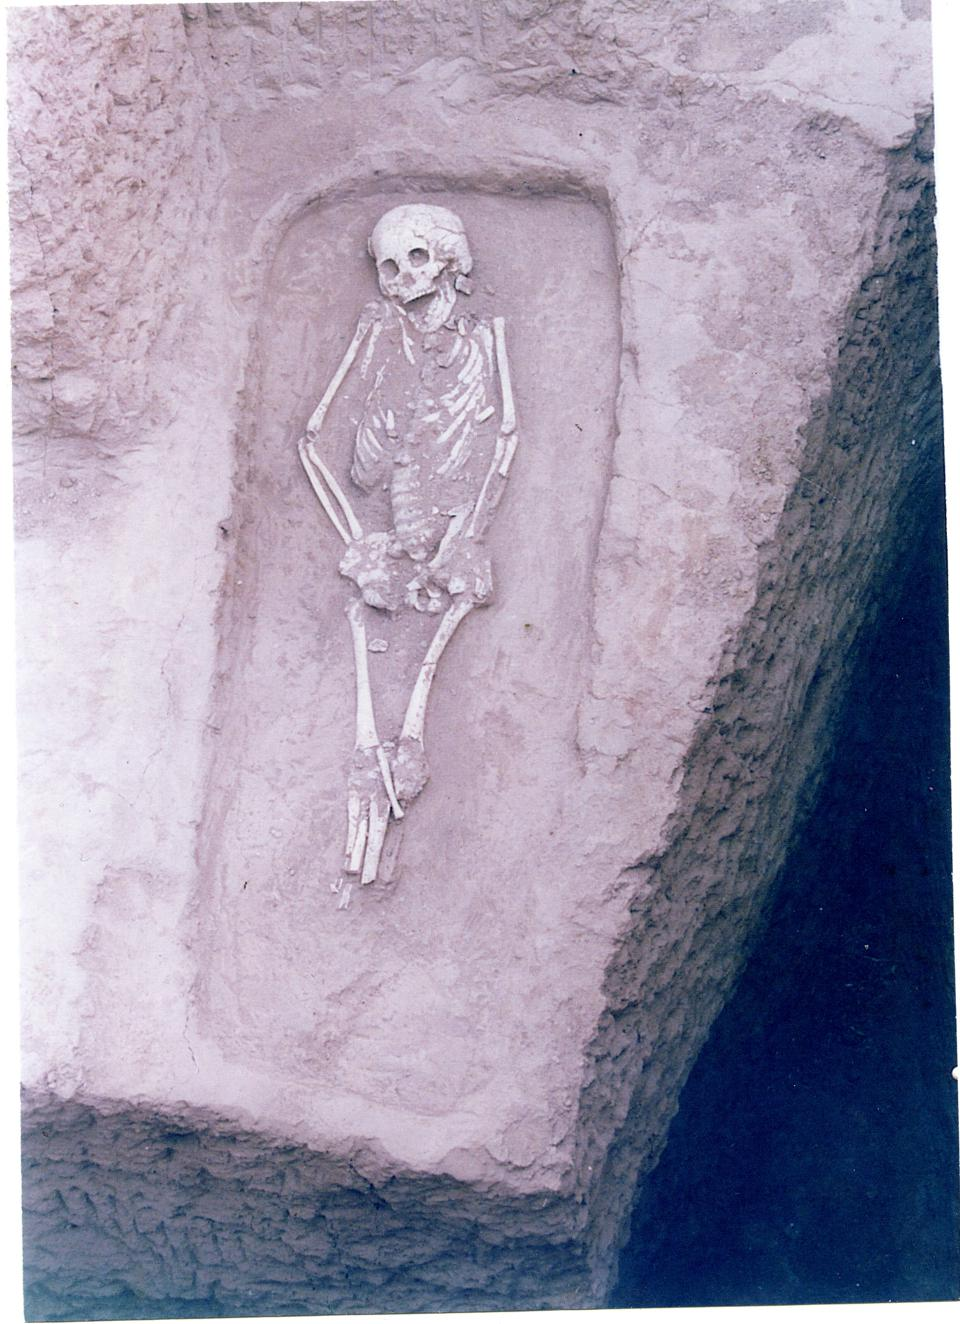 Archaeologists Find Case Of Dwarfism In 3rd Millennium BC China